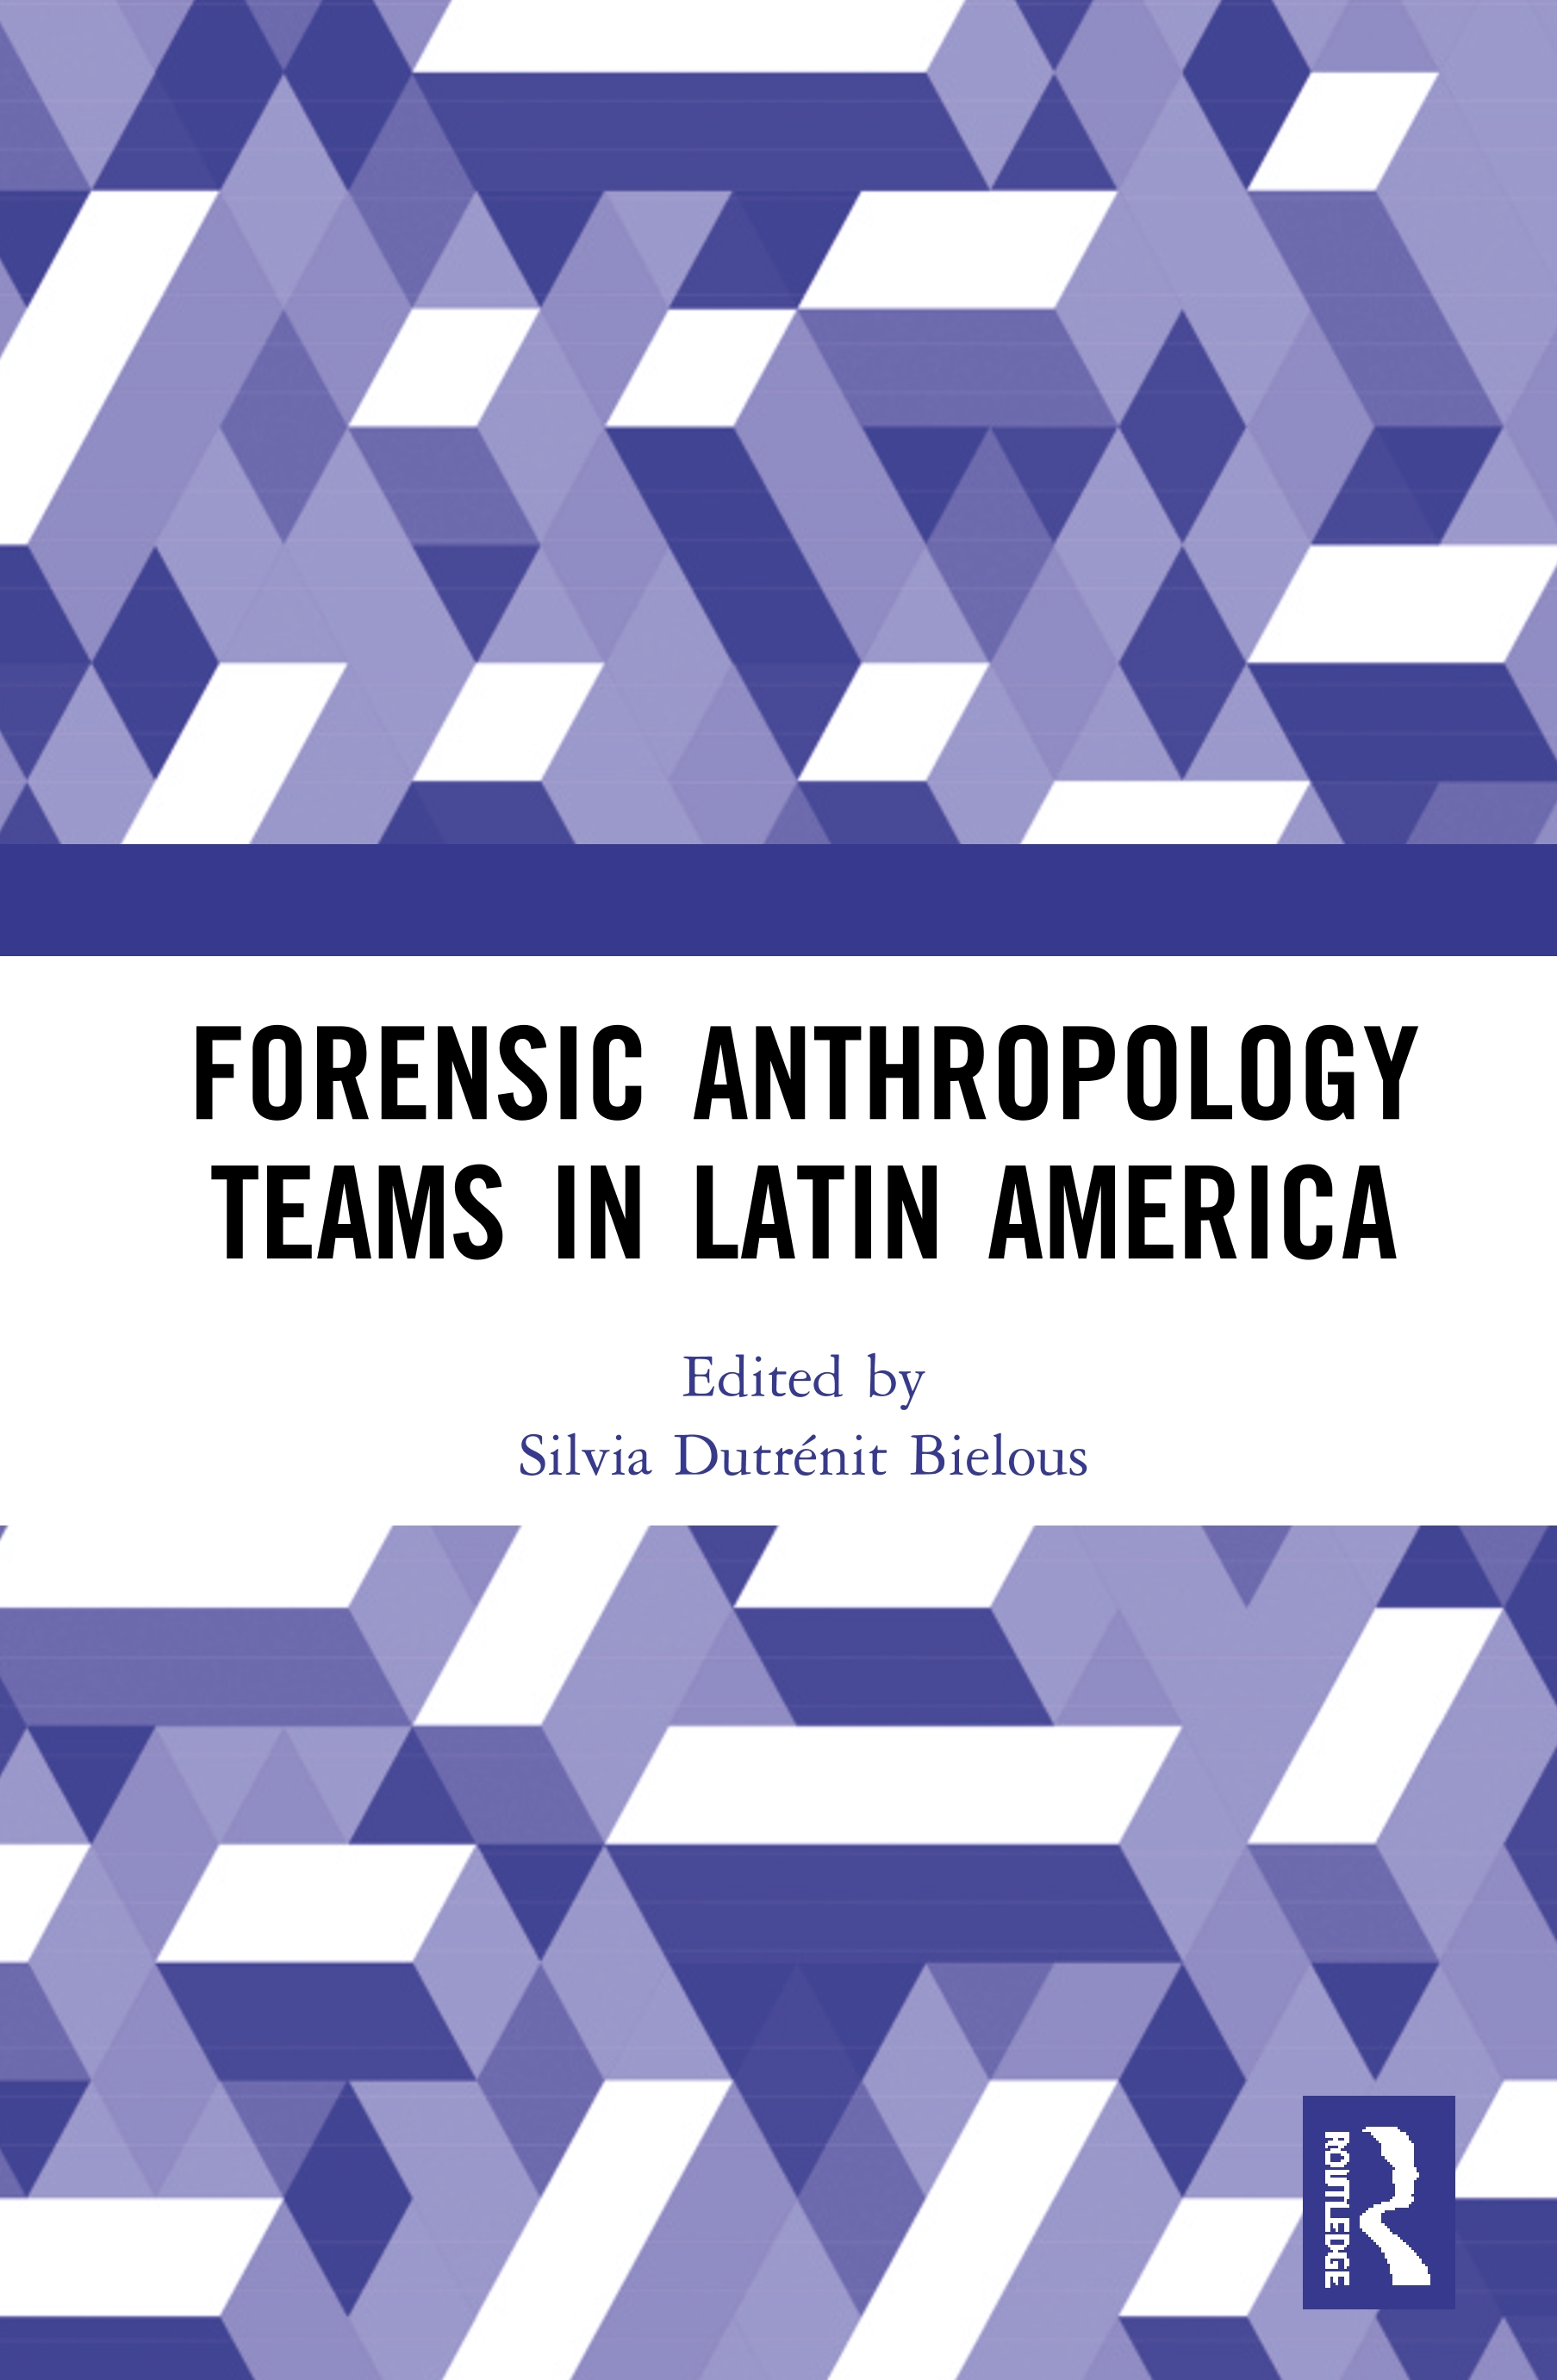 Forensic Anthropology Teams in Latin America